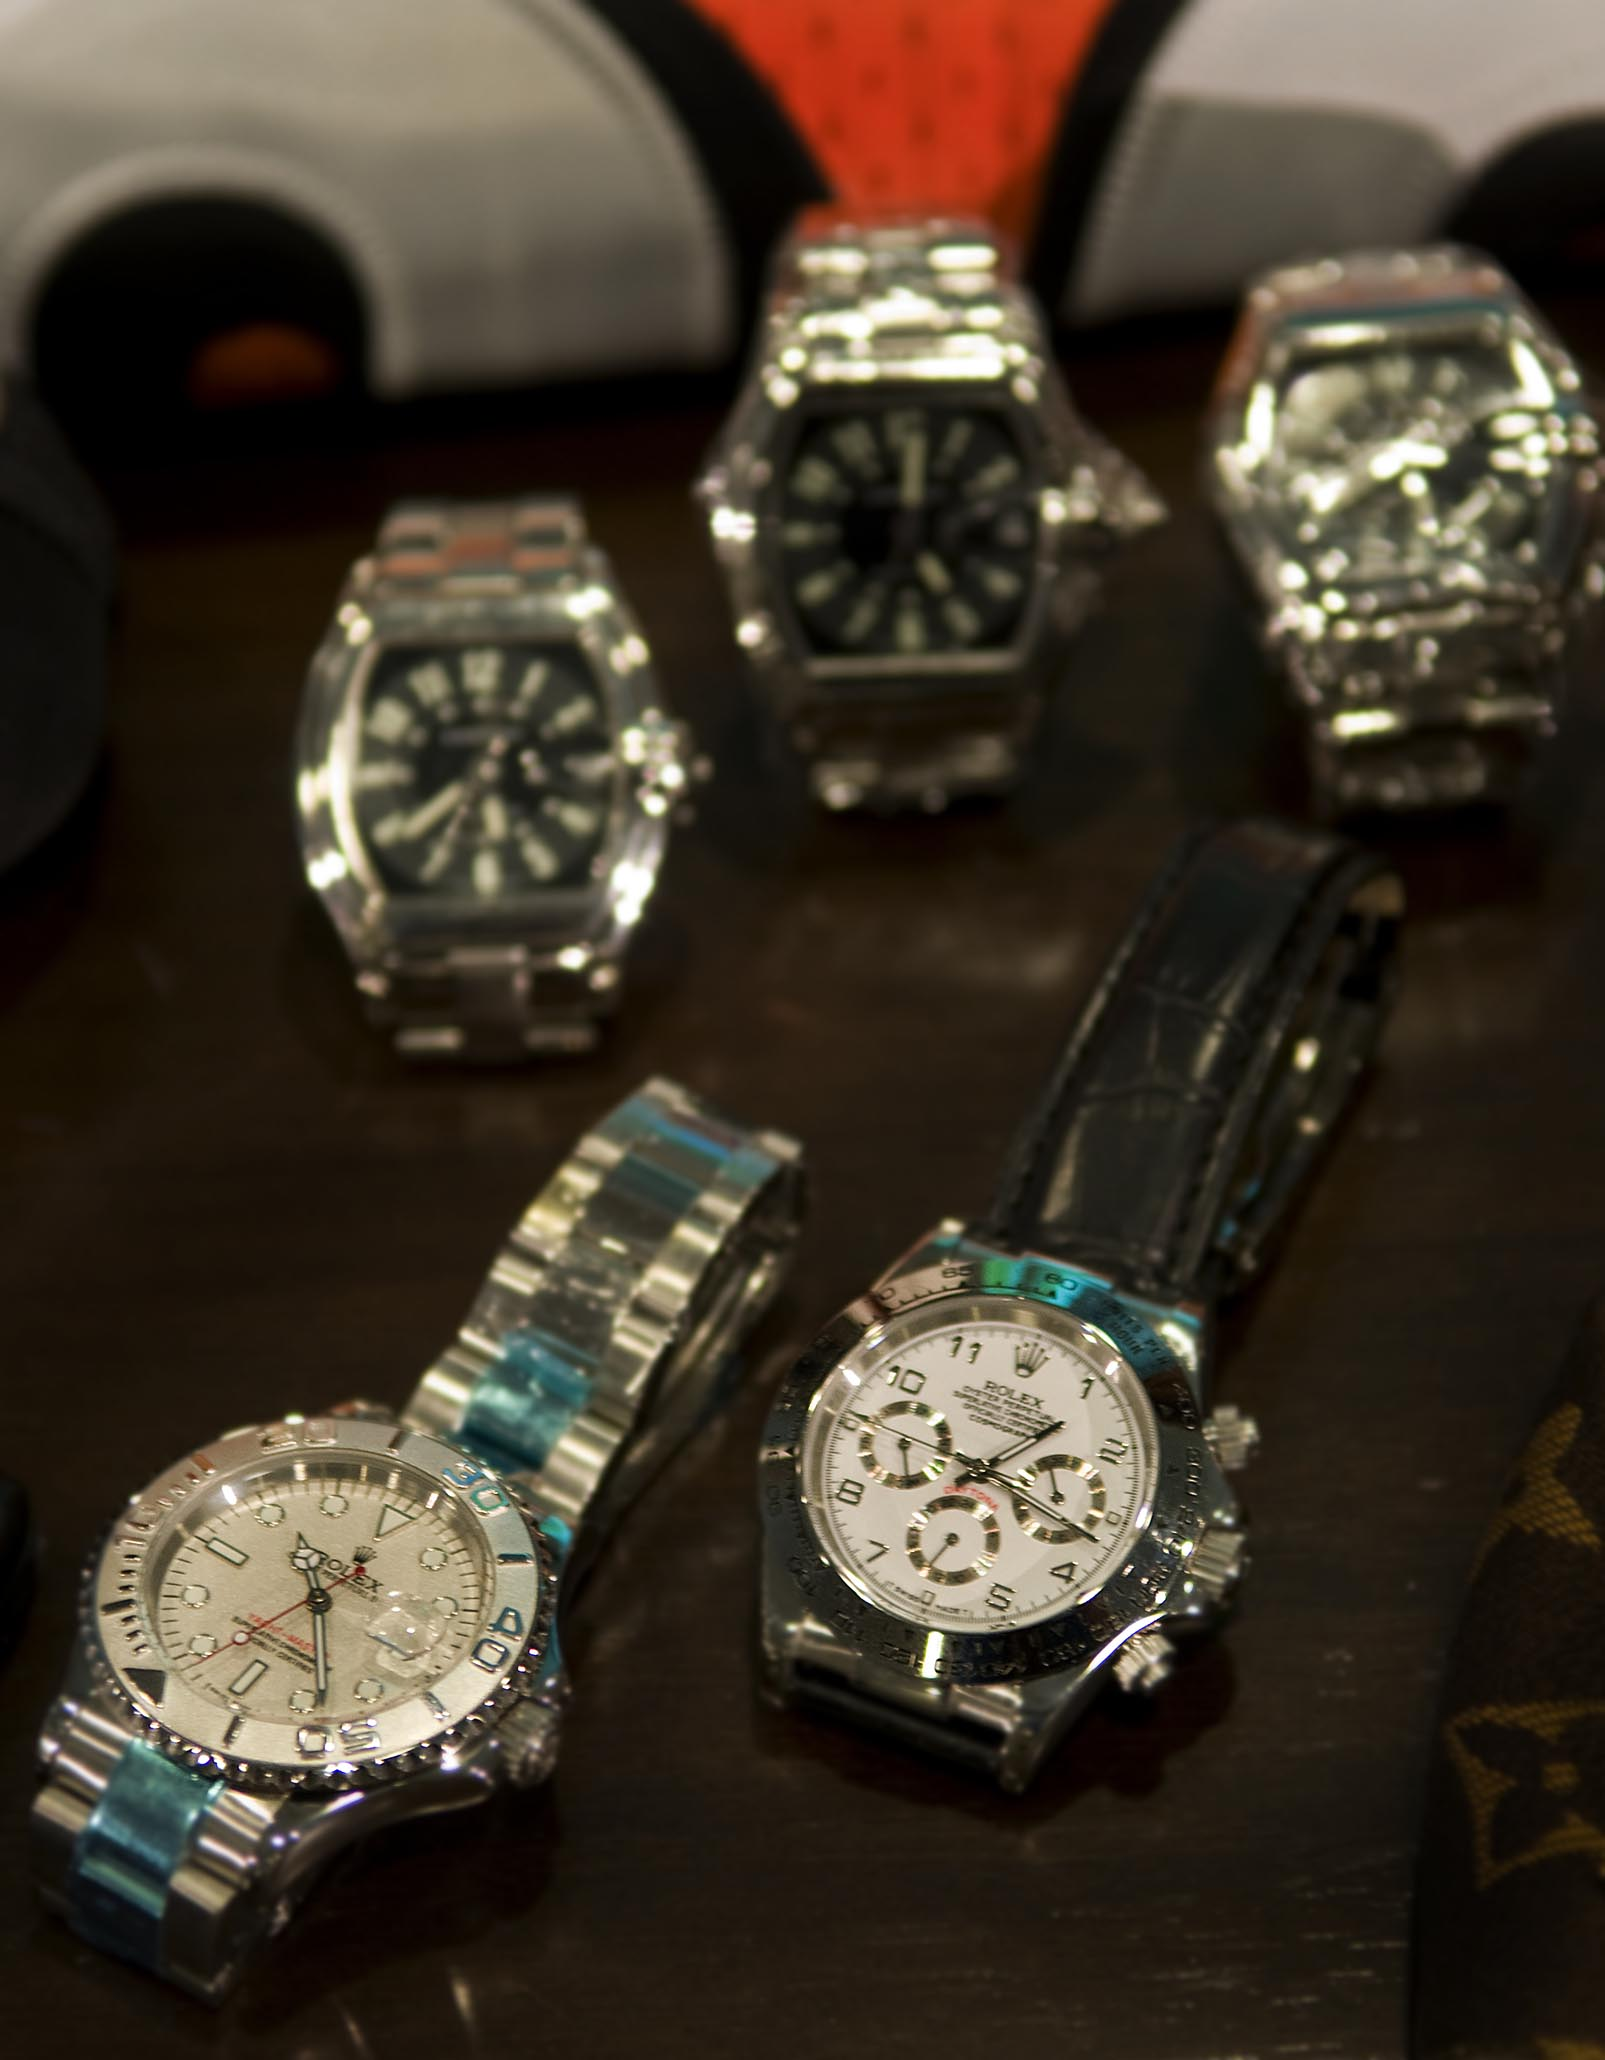 Counterfeit Rolex watches displayed at the National Intellectual Property Rights Coordination Center in Arlington, Virginia, USA (2008)